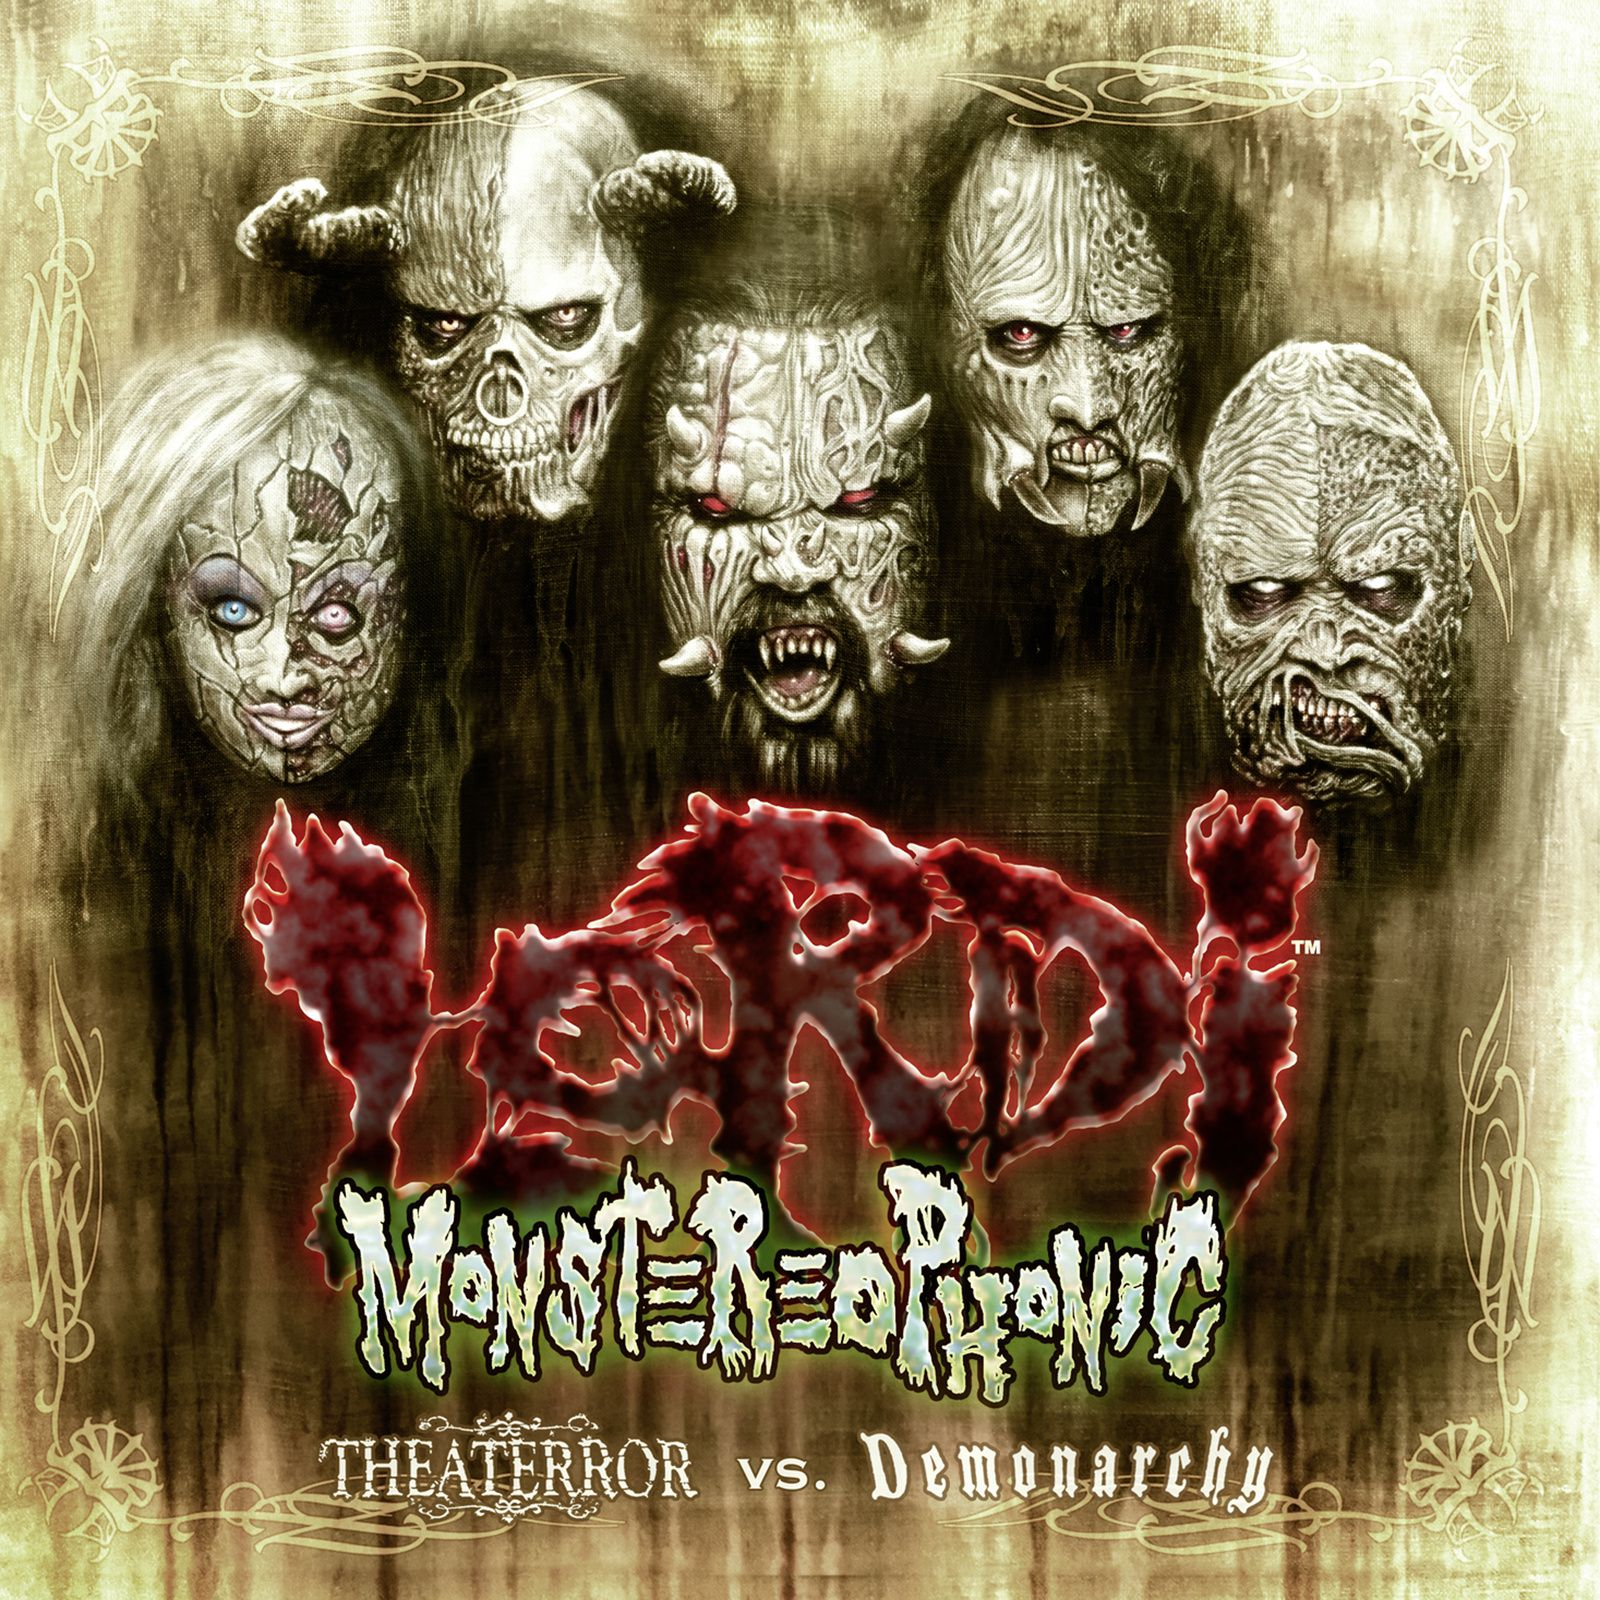 """CD review LORDI """"Monstereophonic - Theaterror vs Demonarchy"""""""